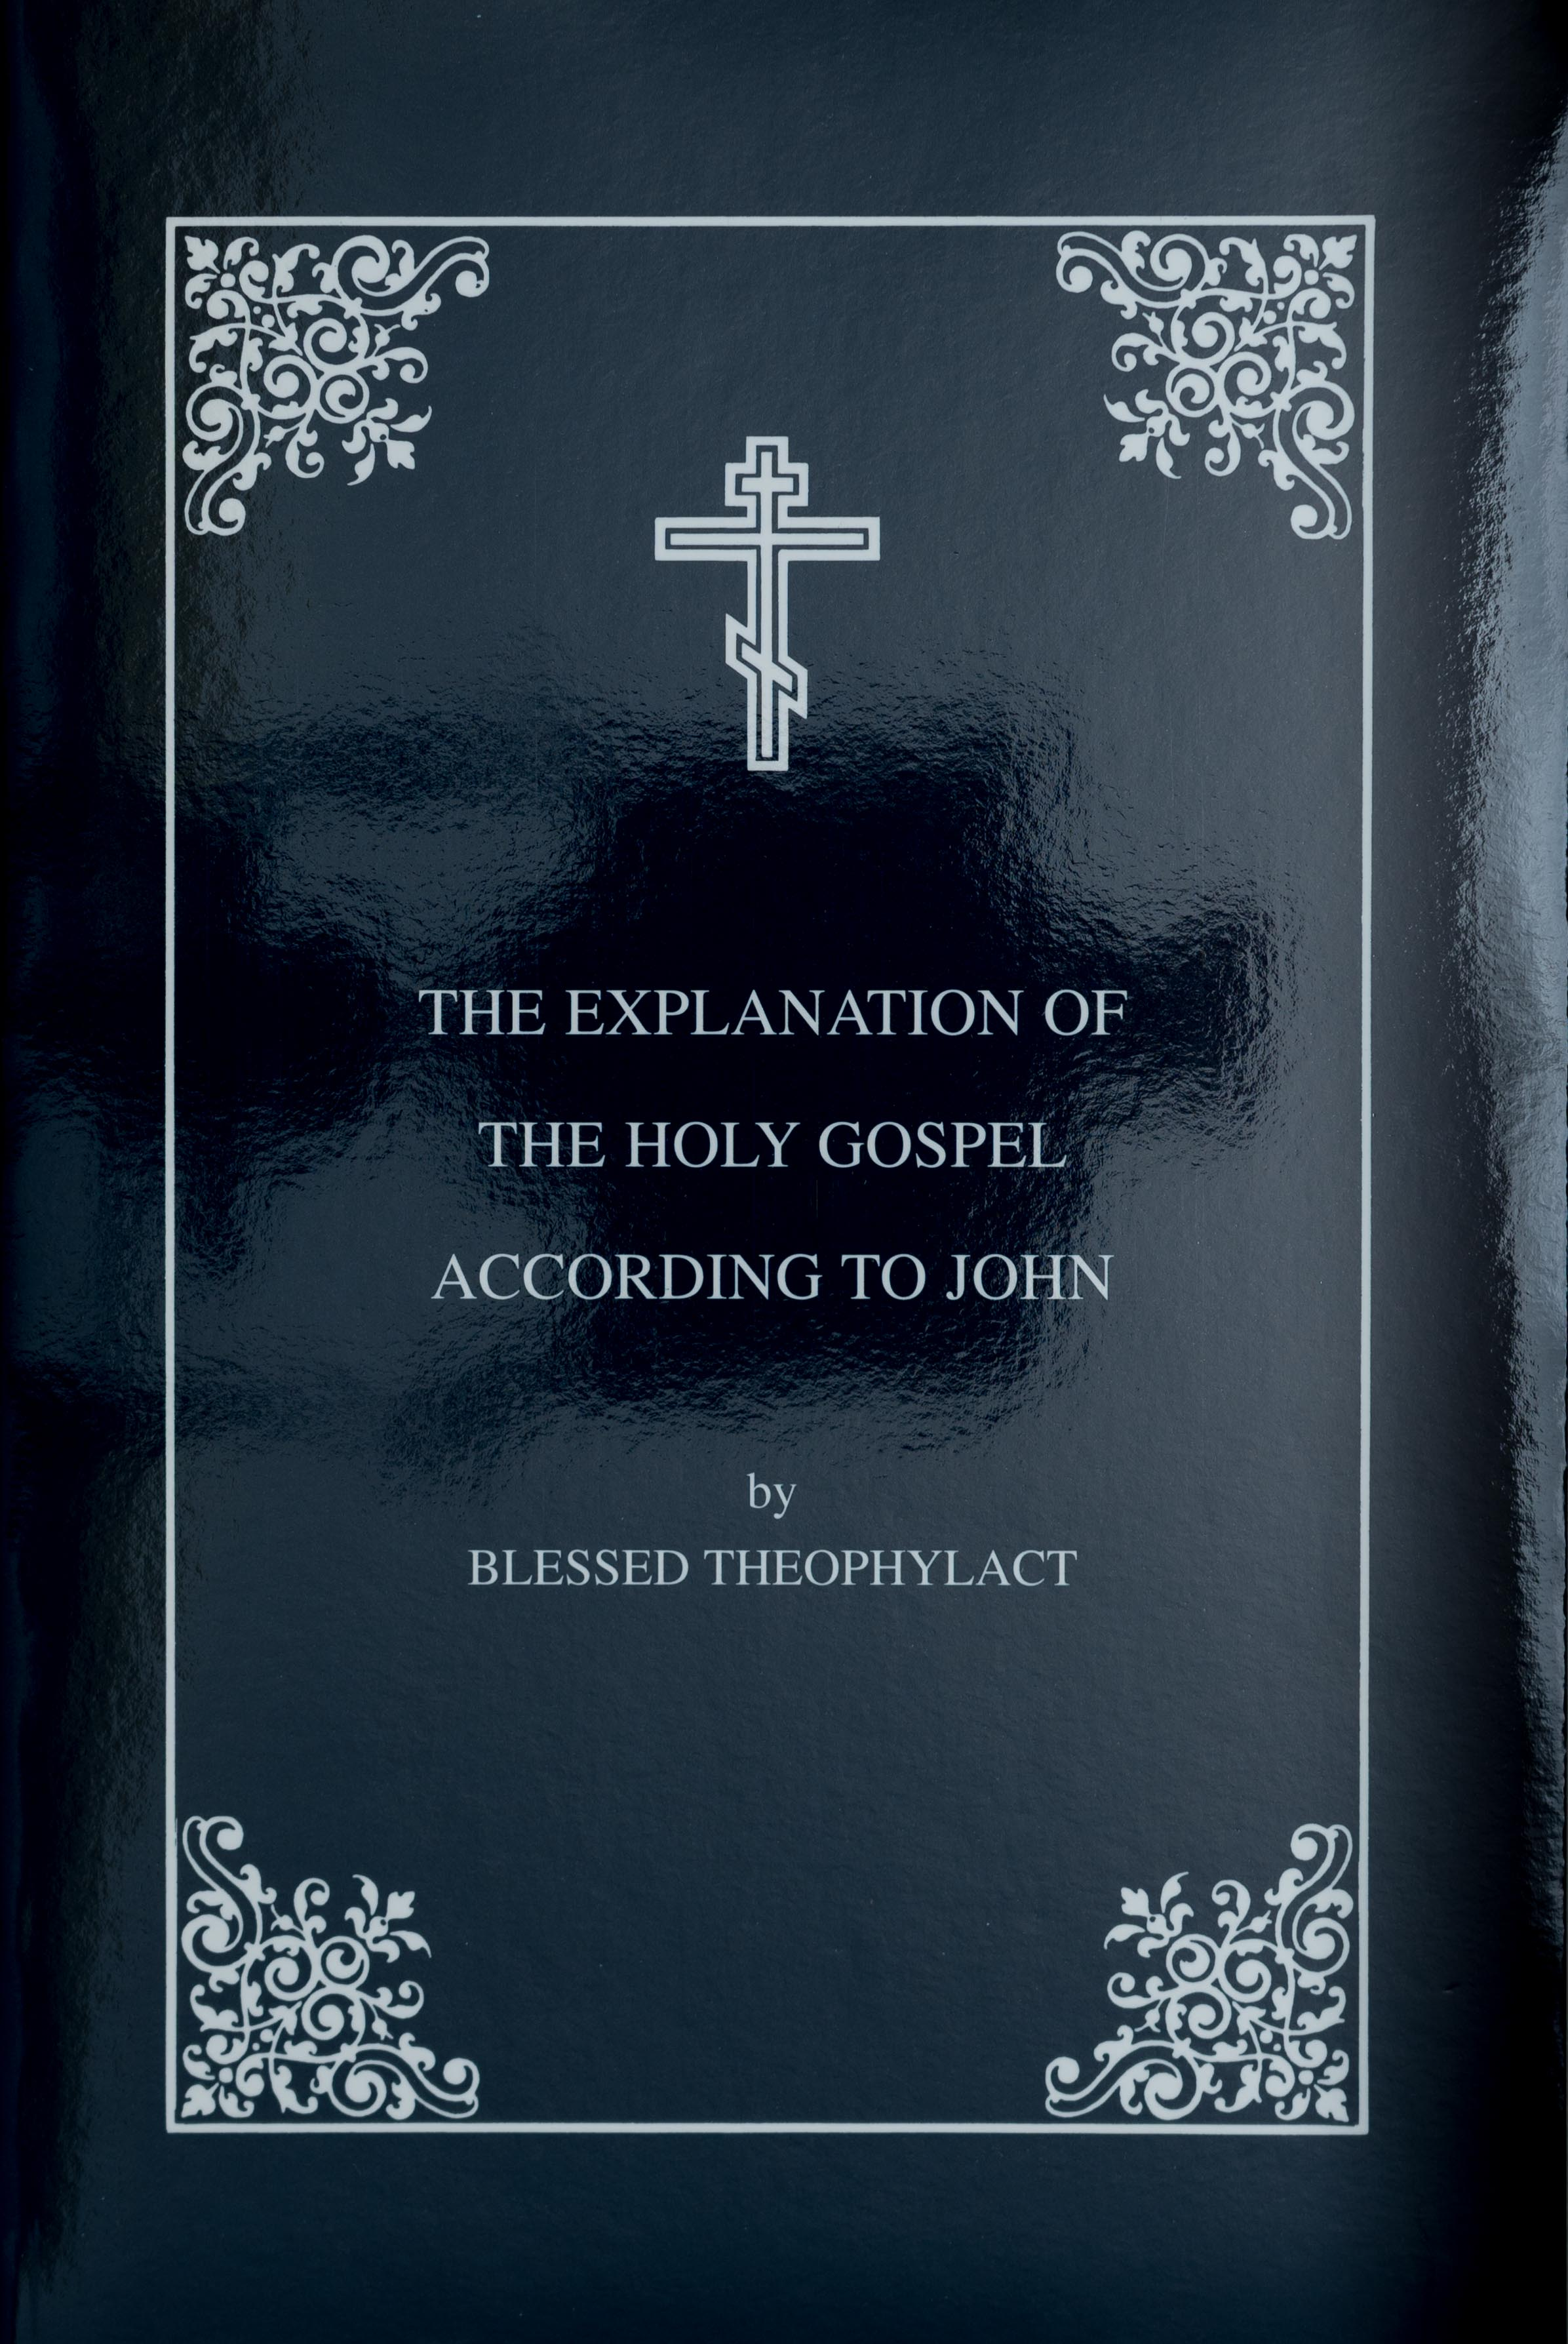 The Explanation of The Holy Gospel According to St John by Blessed Theophylact